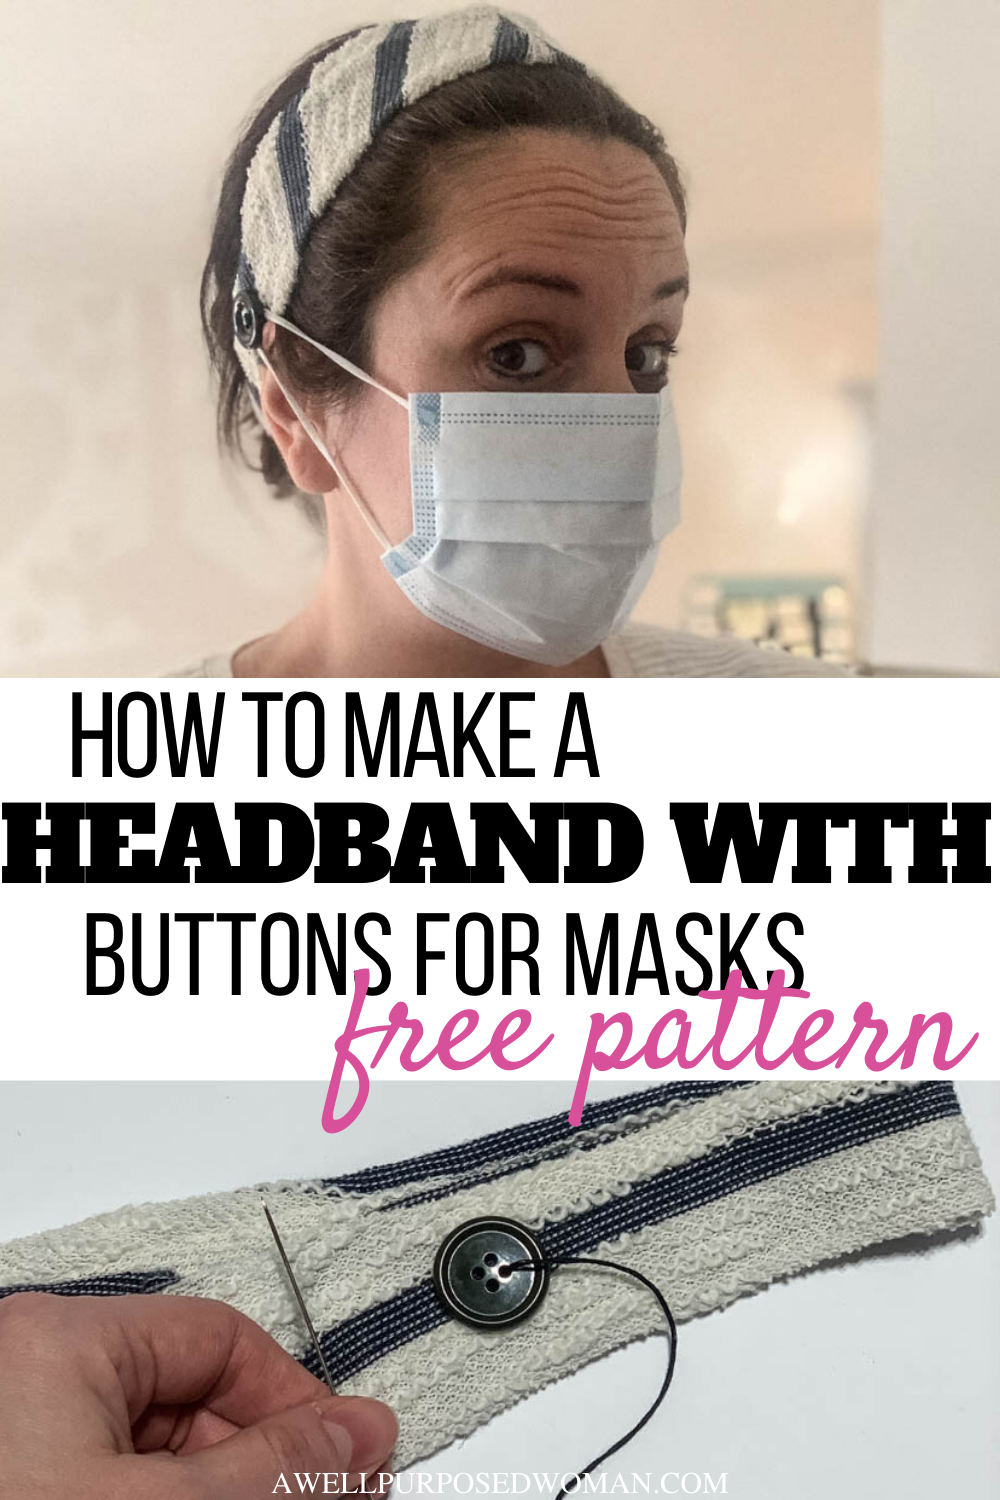 DIY Headband with Buttons for Face Masks (Free Pattern) - A Well Purposed Woman